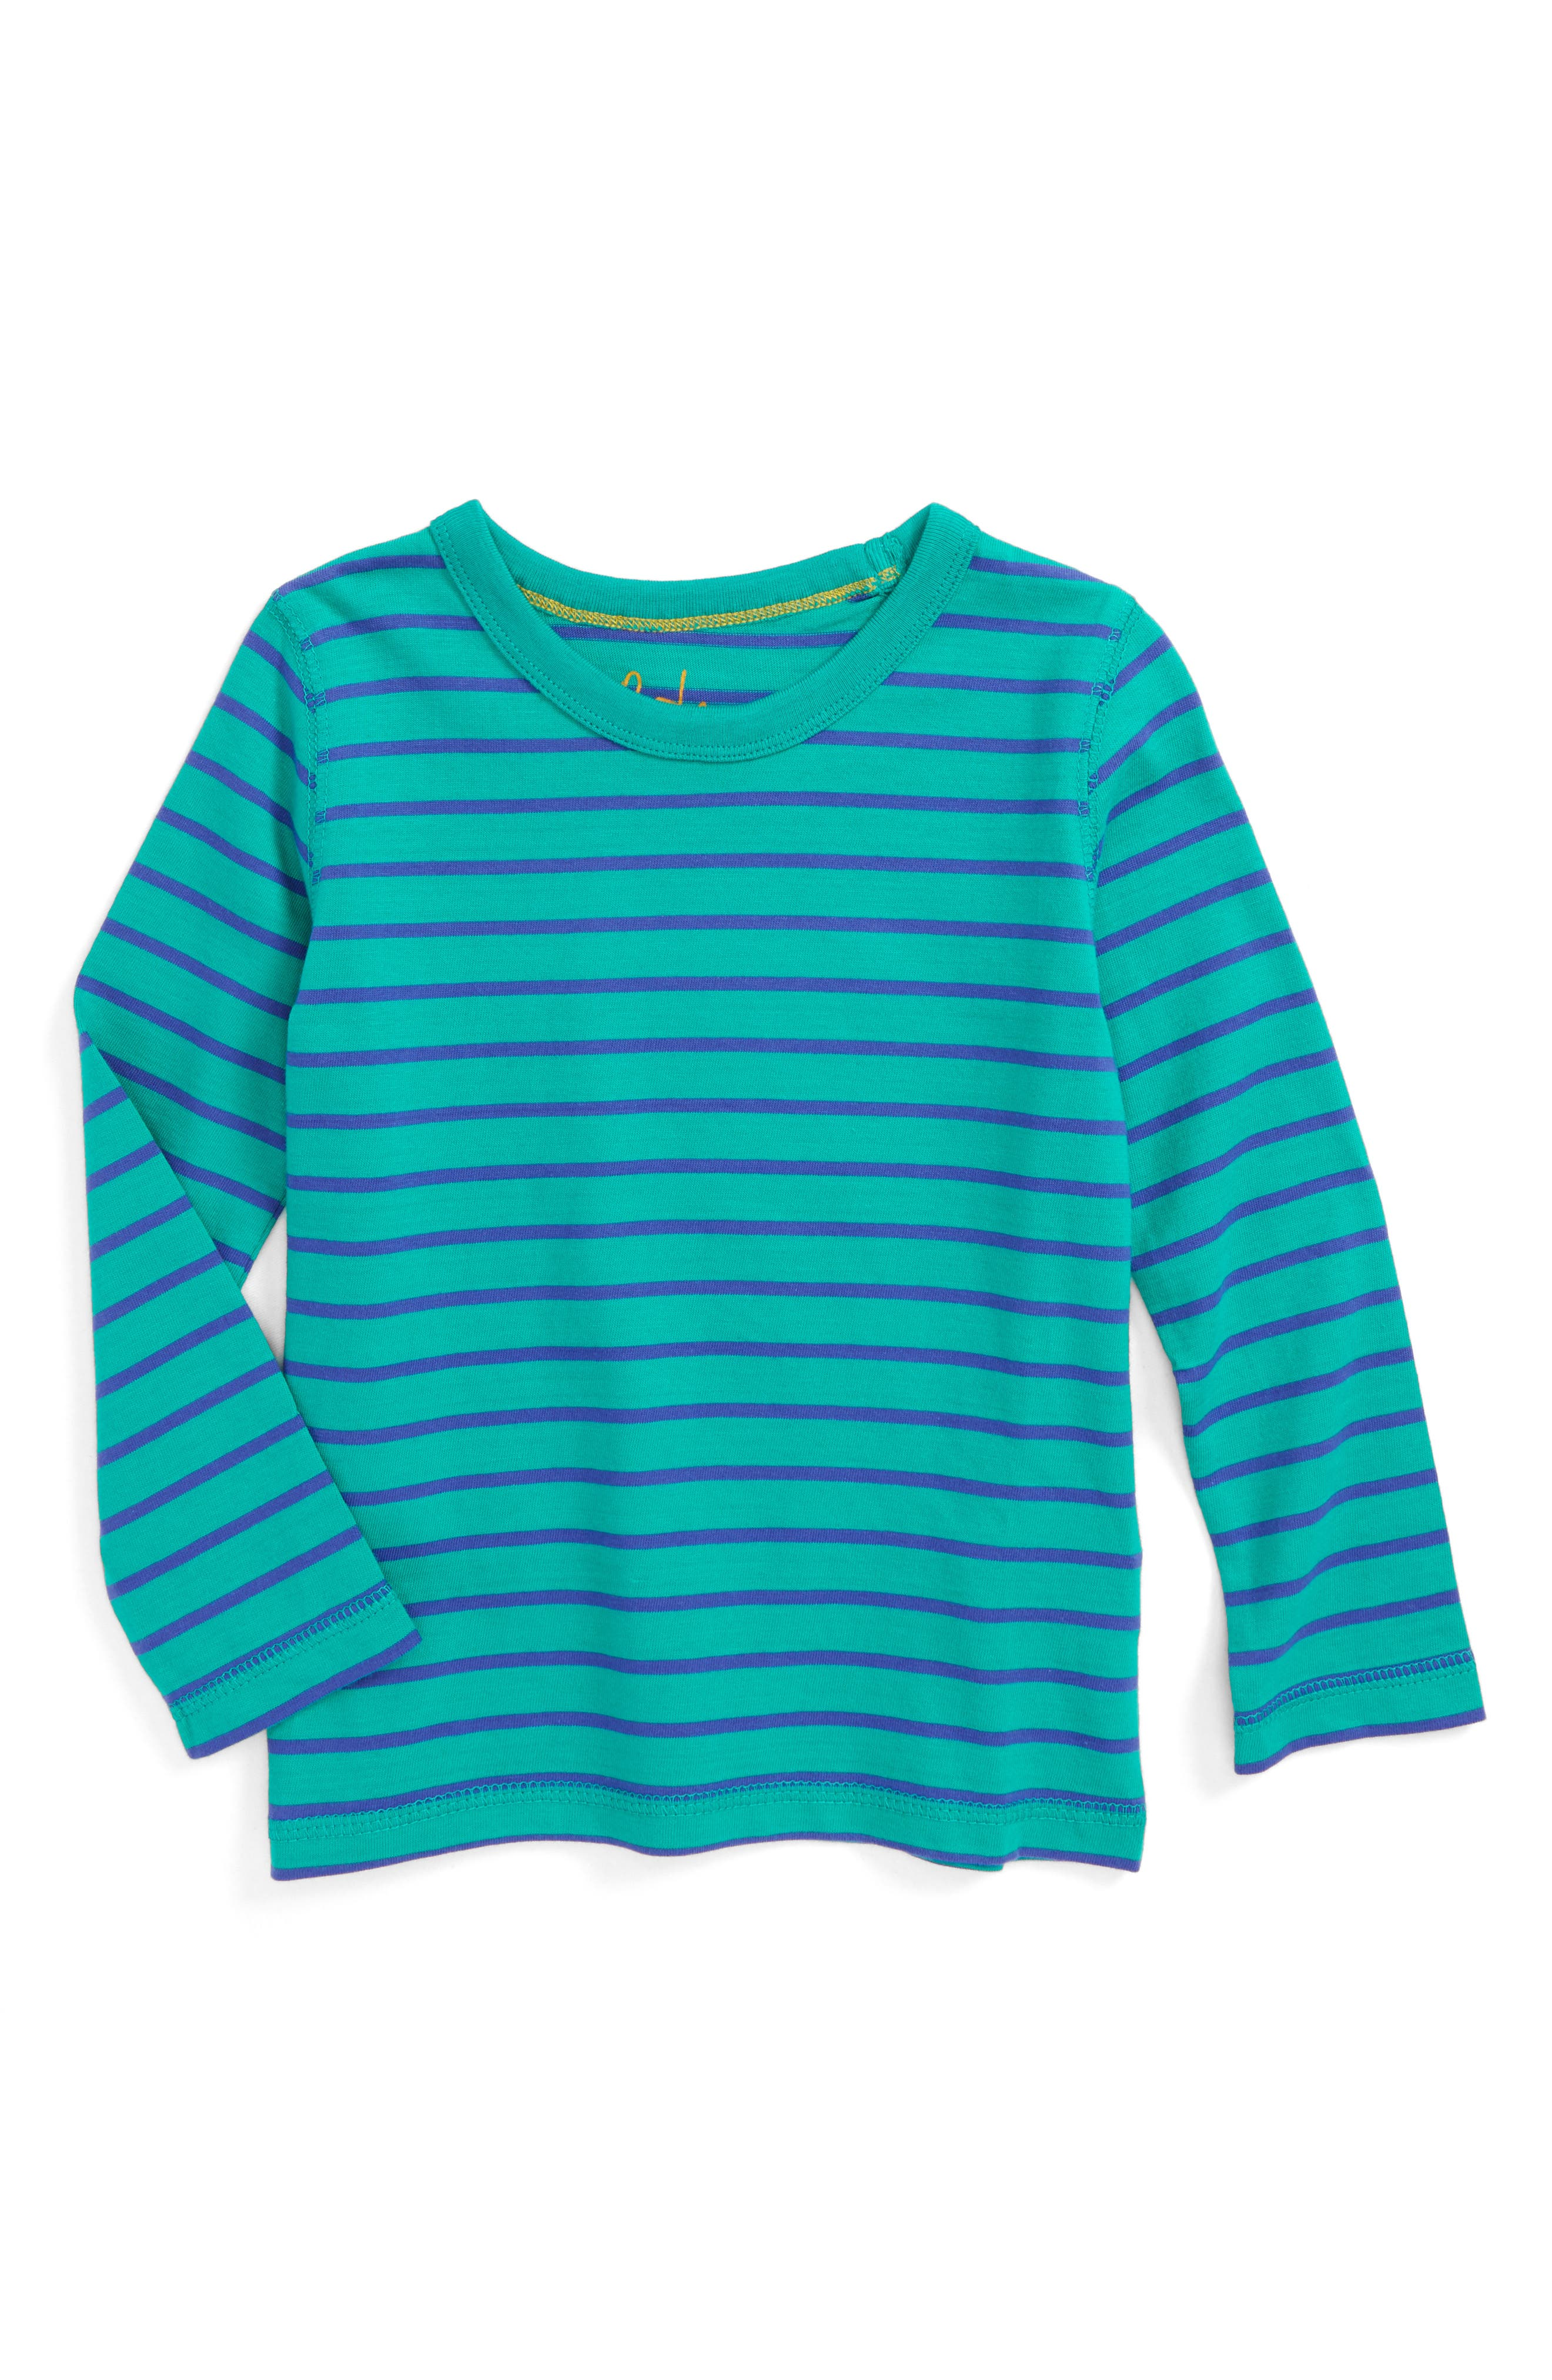 Main Image - Mini Boden Supersoft Stripe T-Shirt (Toddler Boys, Little Boys & Big Boys)